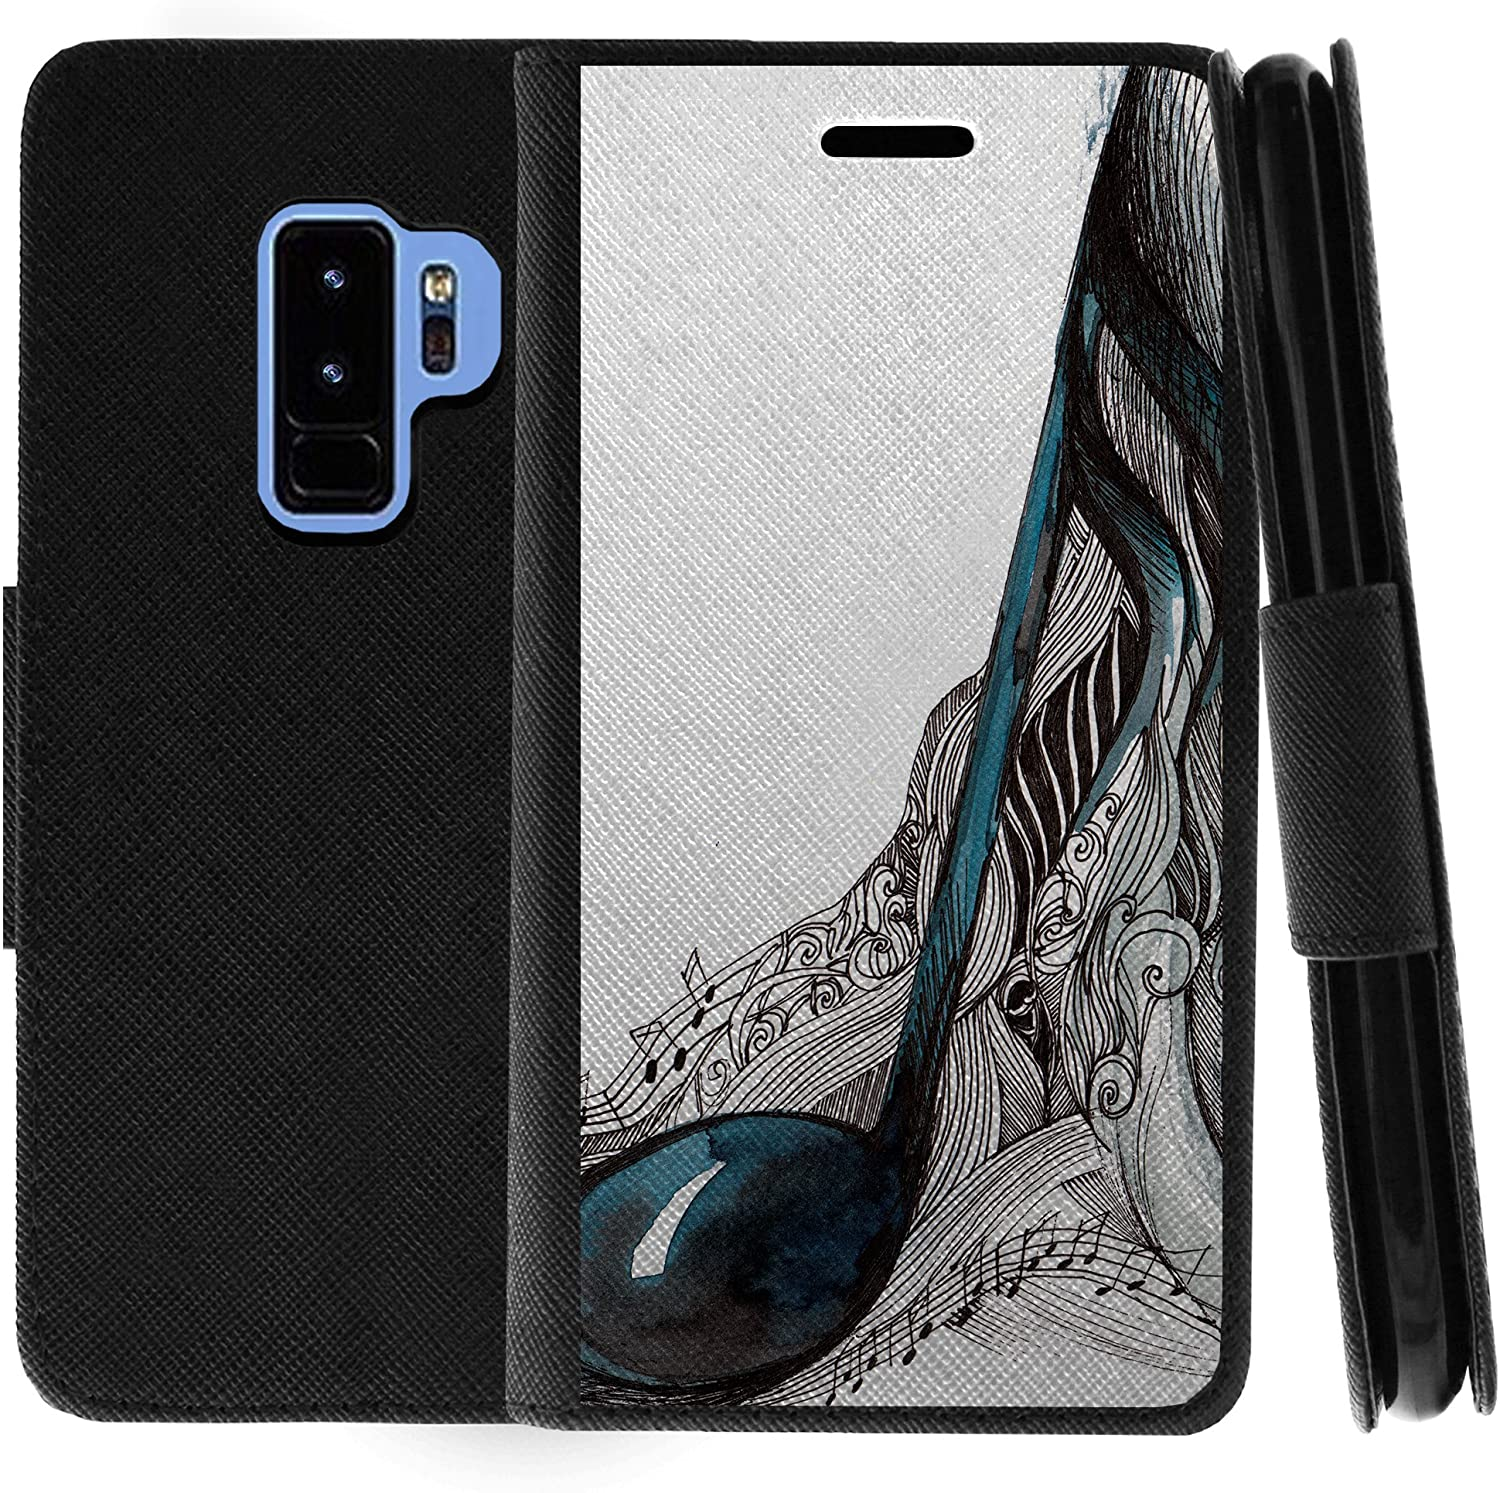 TurtleArmor | Compatible with Samsung Galaxy S9+ Case | S9 Plus Case | G965 | Flip Kickstand Wallet Case Leather Cover with Card Slots Music - Artistic Music Notes